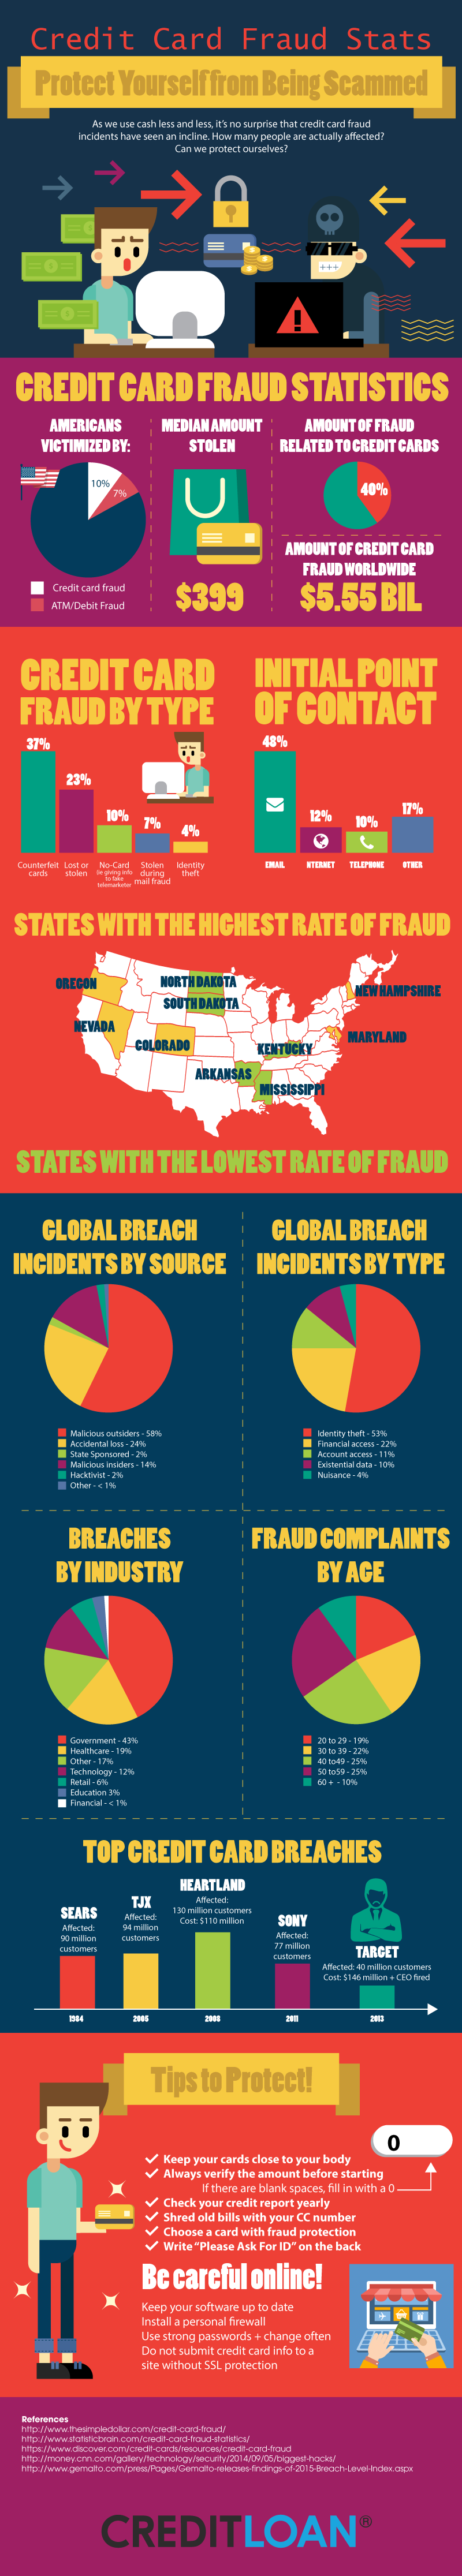 credit-card-fraud-protection